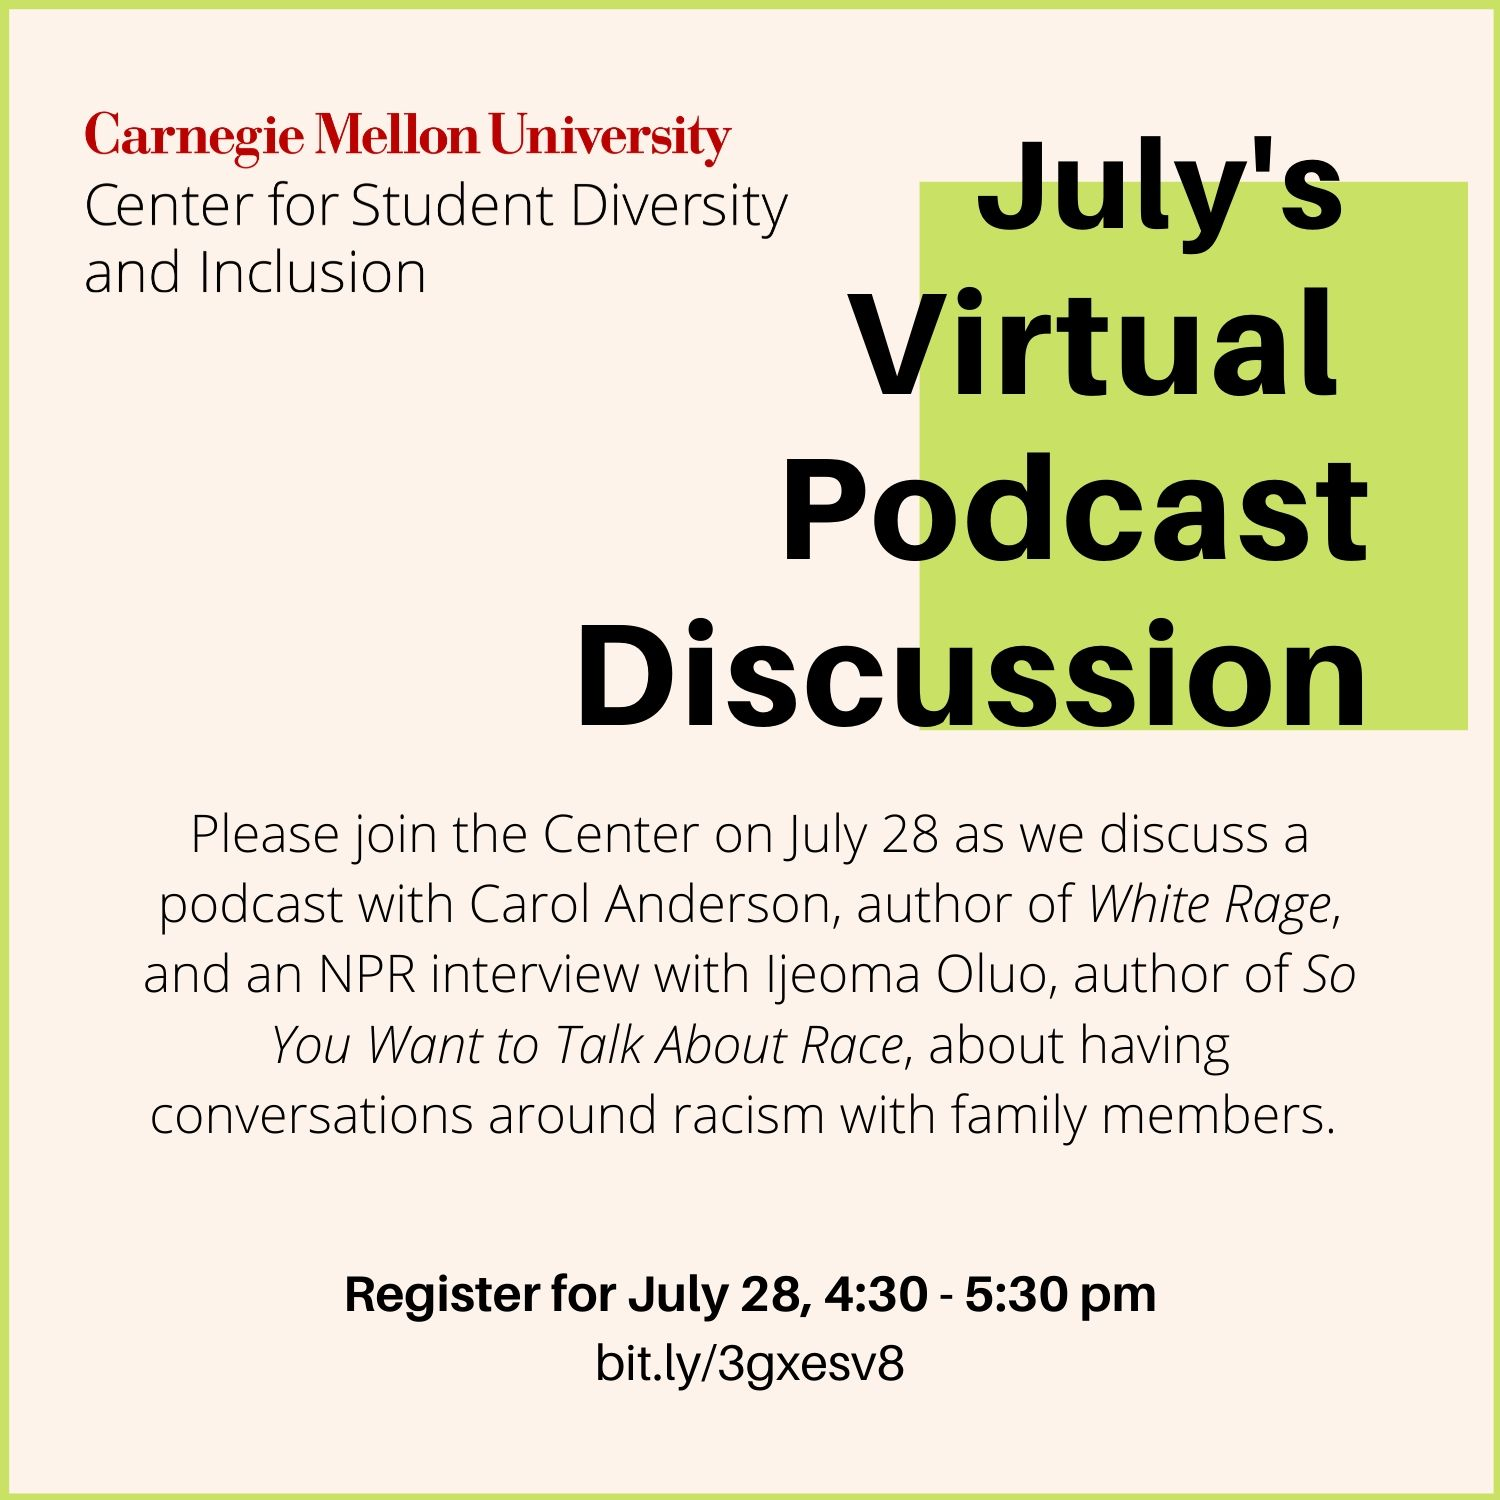 Event flyer for July's Virtual Podcast Discussion on July 28.